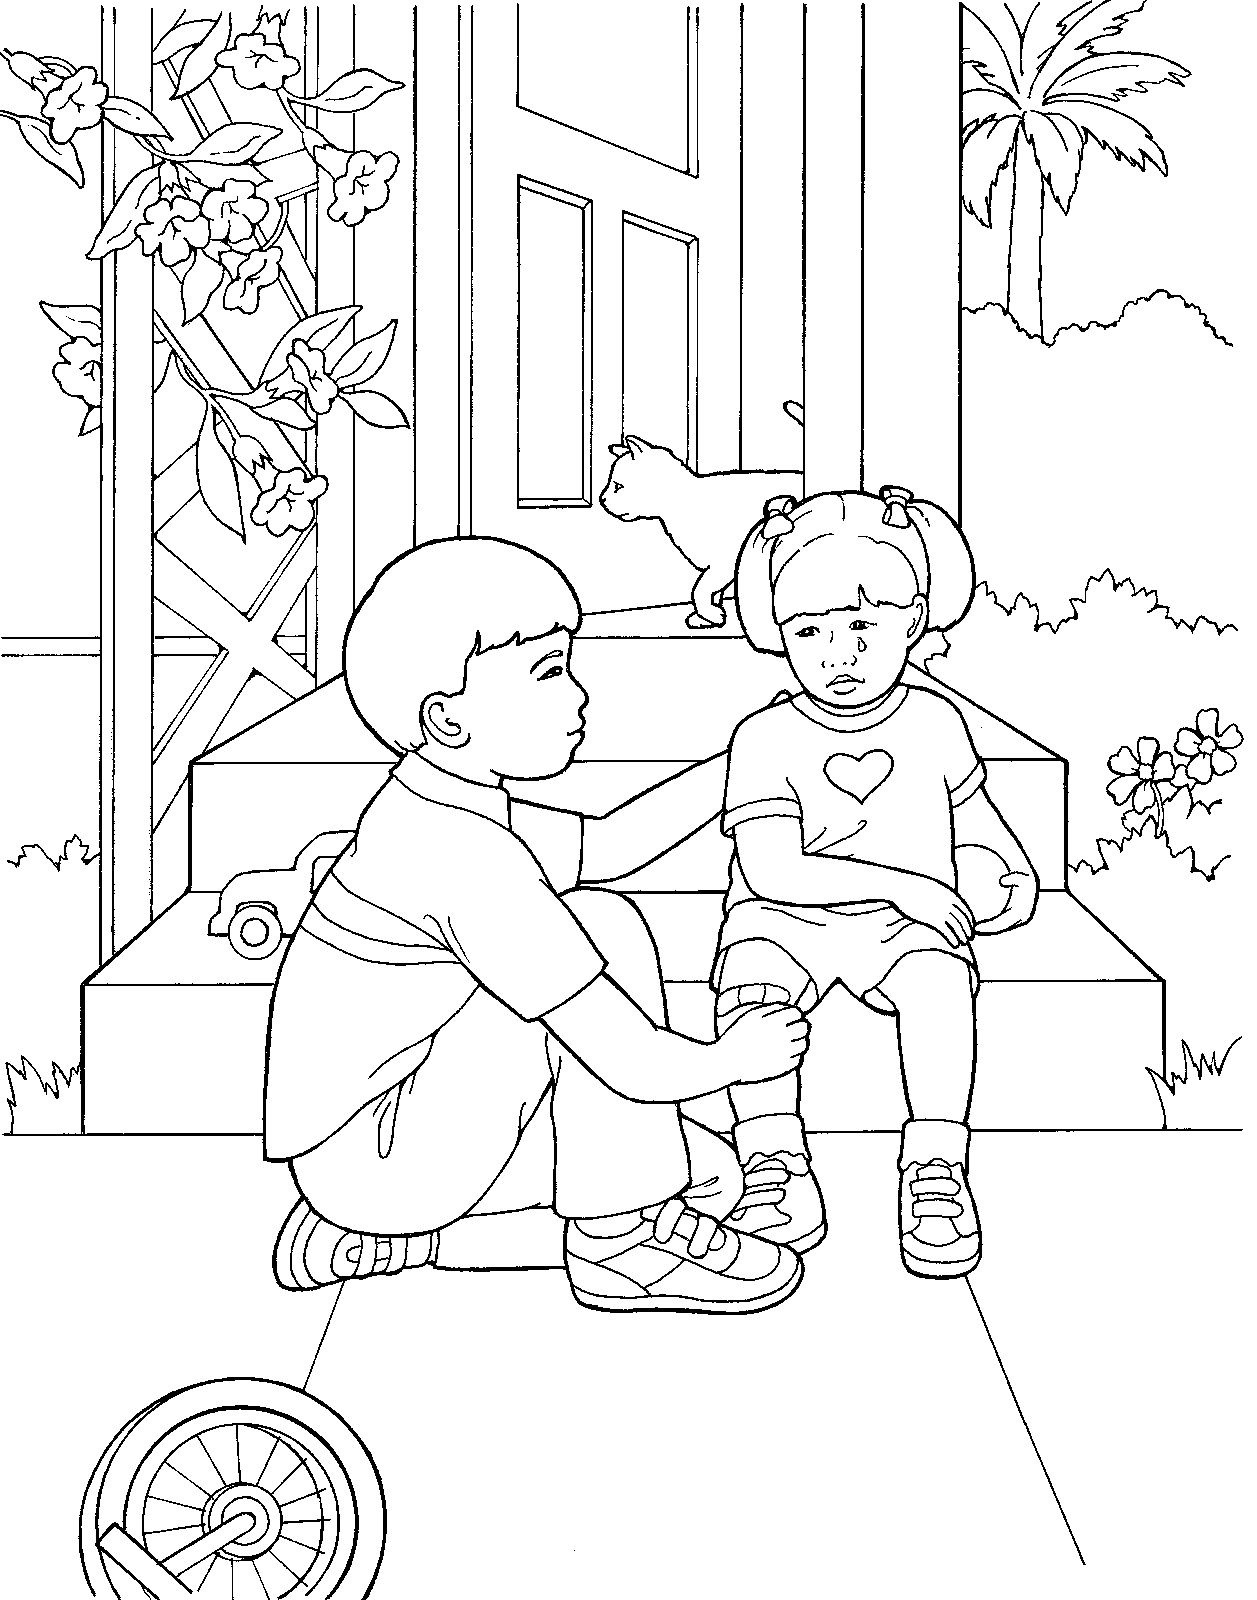 Primary Coloring Page From Lds Org A Little Boy Comforts A Little